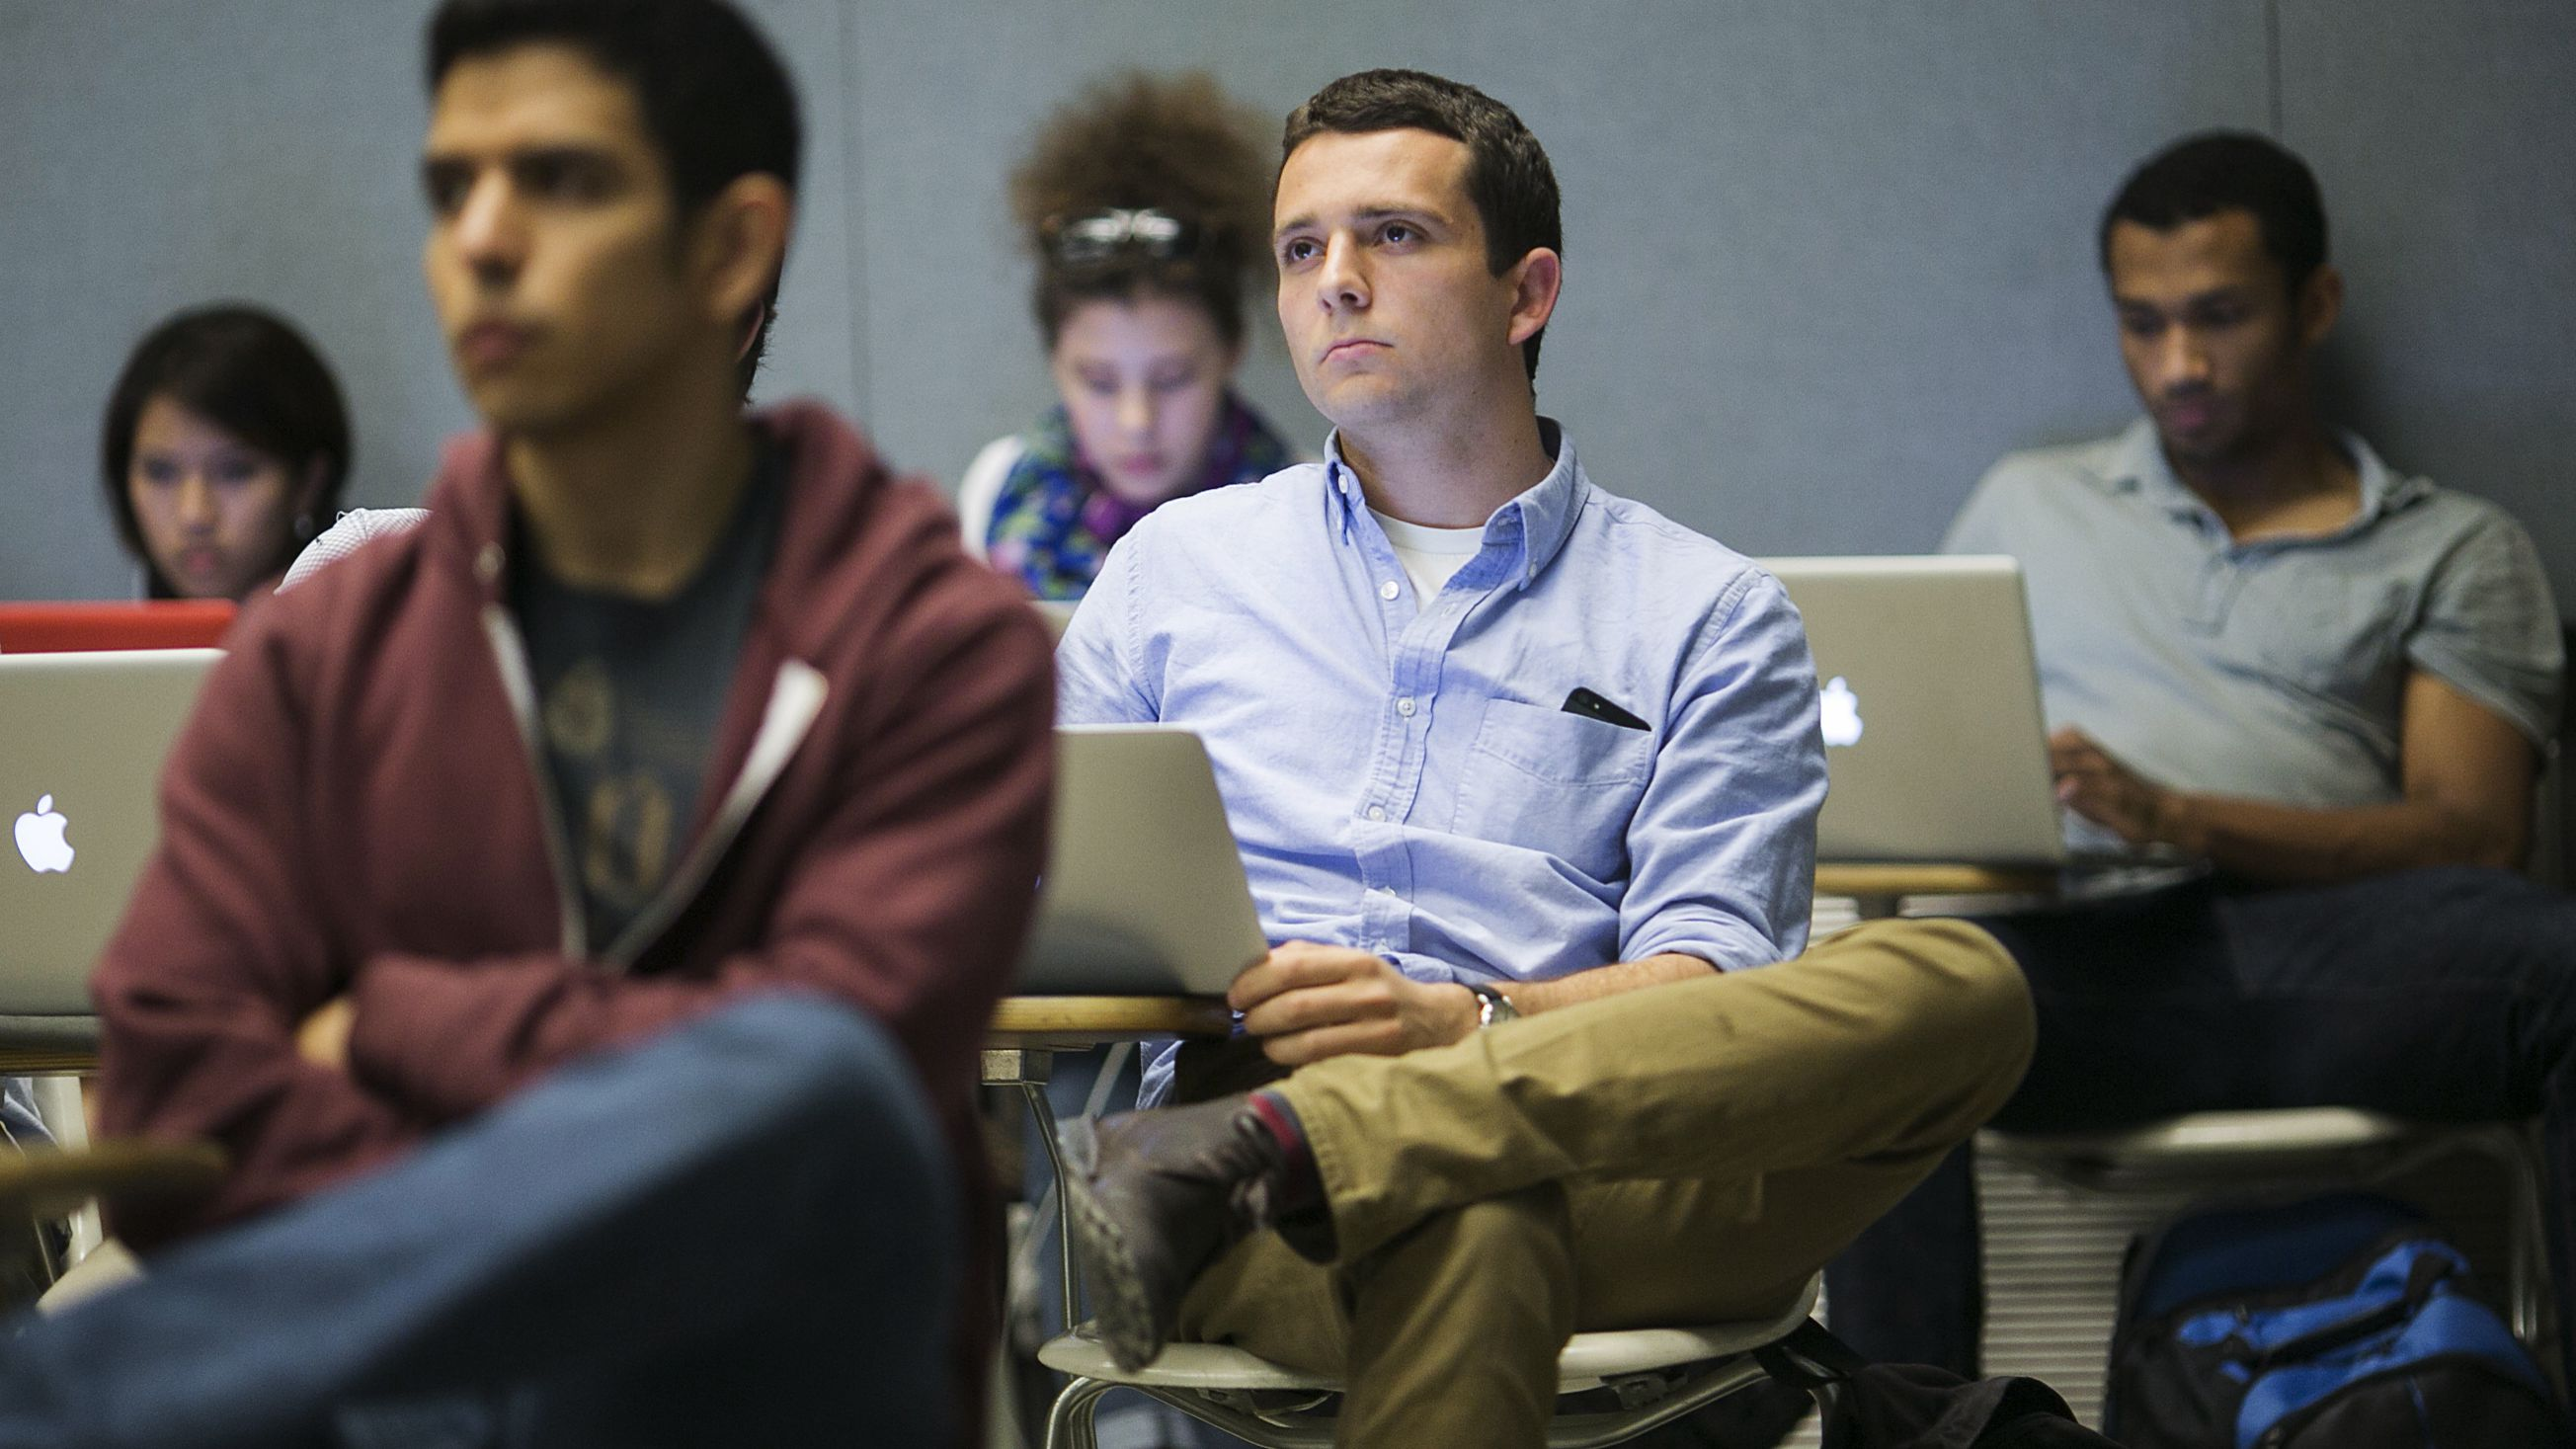 Stanford University students listen while classmates make a presentation to a group of visiting venture capitalists during their Technology Entrepreneurship class in Stanford, California March 11, 2014. Picture taken March 11, 2014. To match Special Report USA-STARTUPS/STANFORD REUTERS/Stephen Lam (UNITED STATES - Tags: EDUCATION BUSINESS SCIENCE TECHNOLOGY)